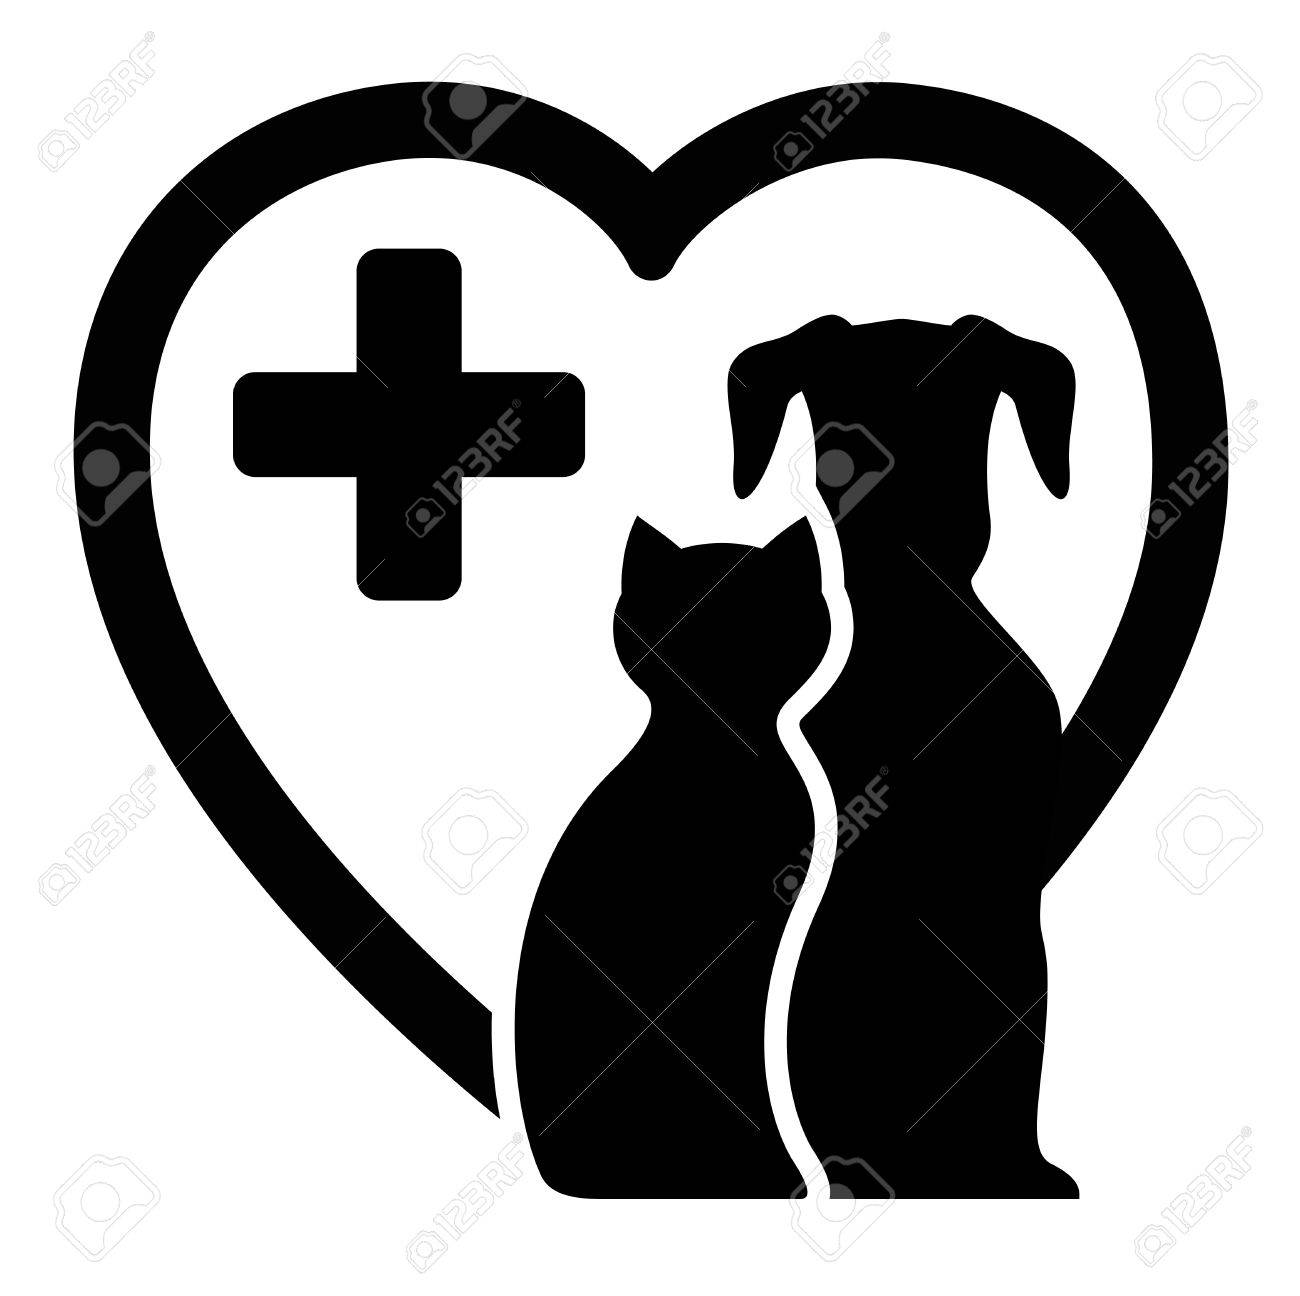 black icon with dog and cat on heart silhouette for veterinary services - 49175068